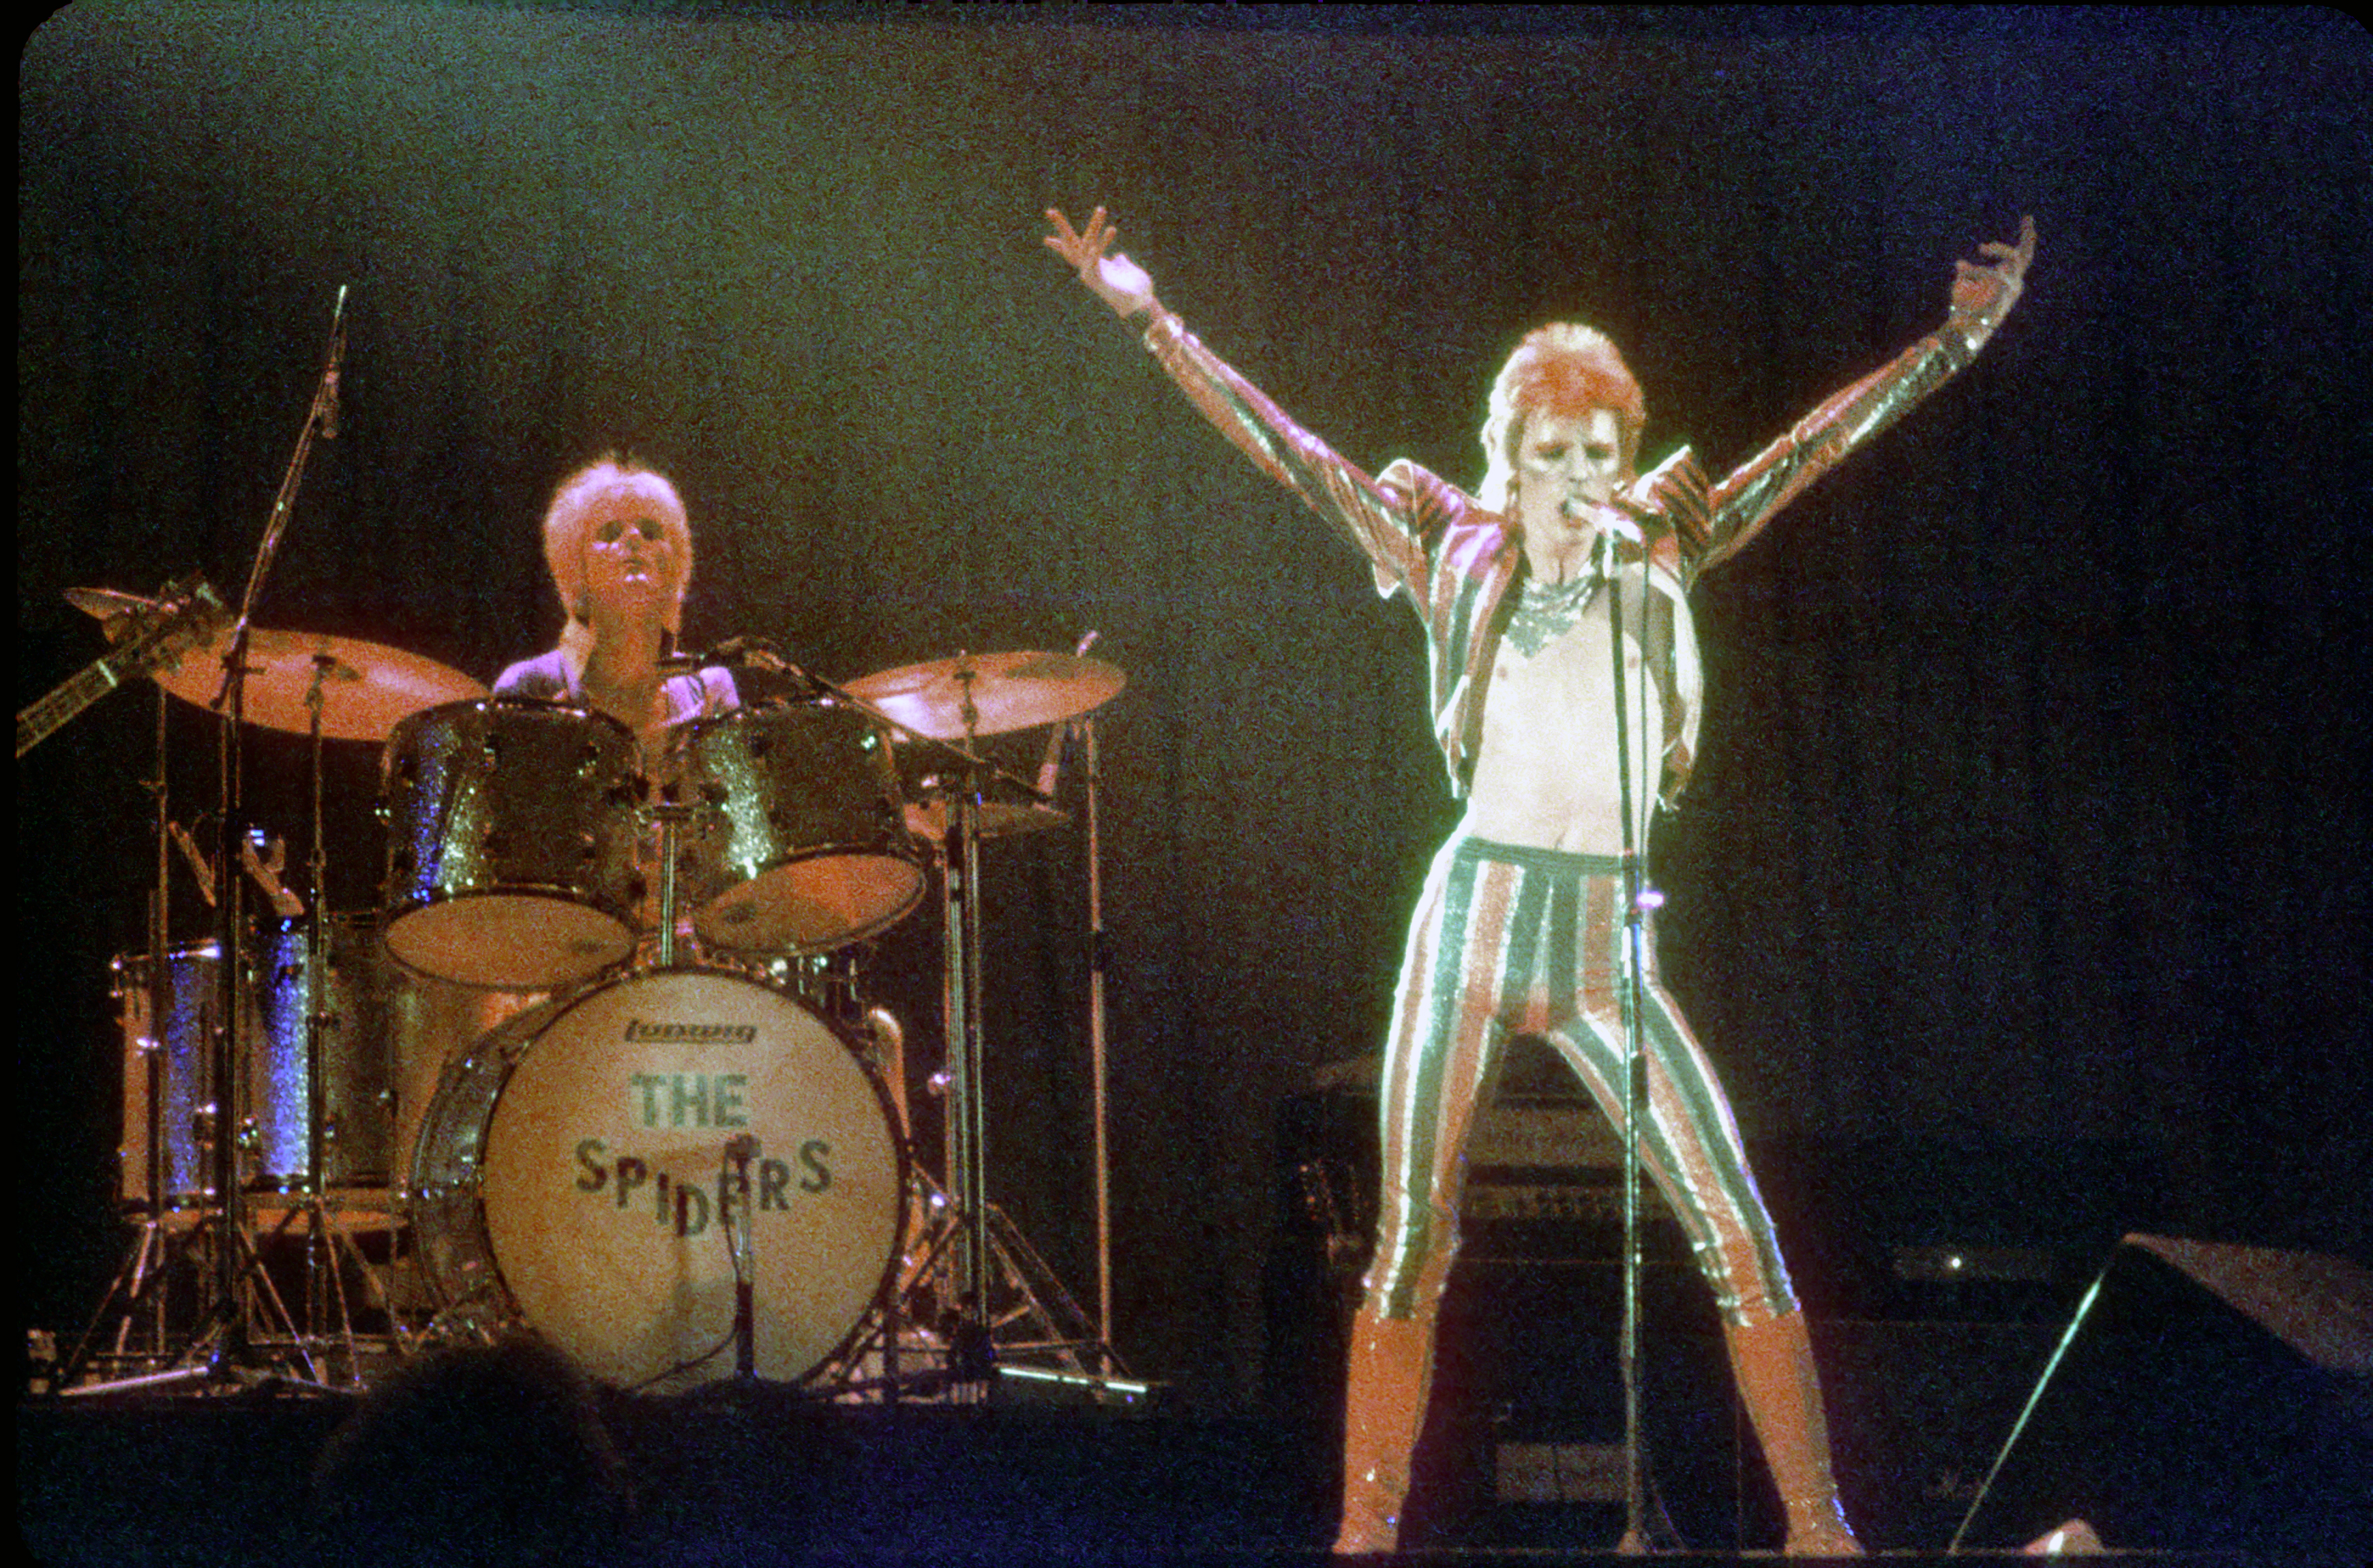 David Bowie Ziggy Stardust Tour in LA 1973